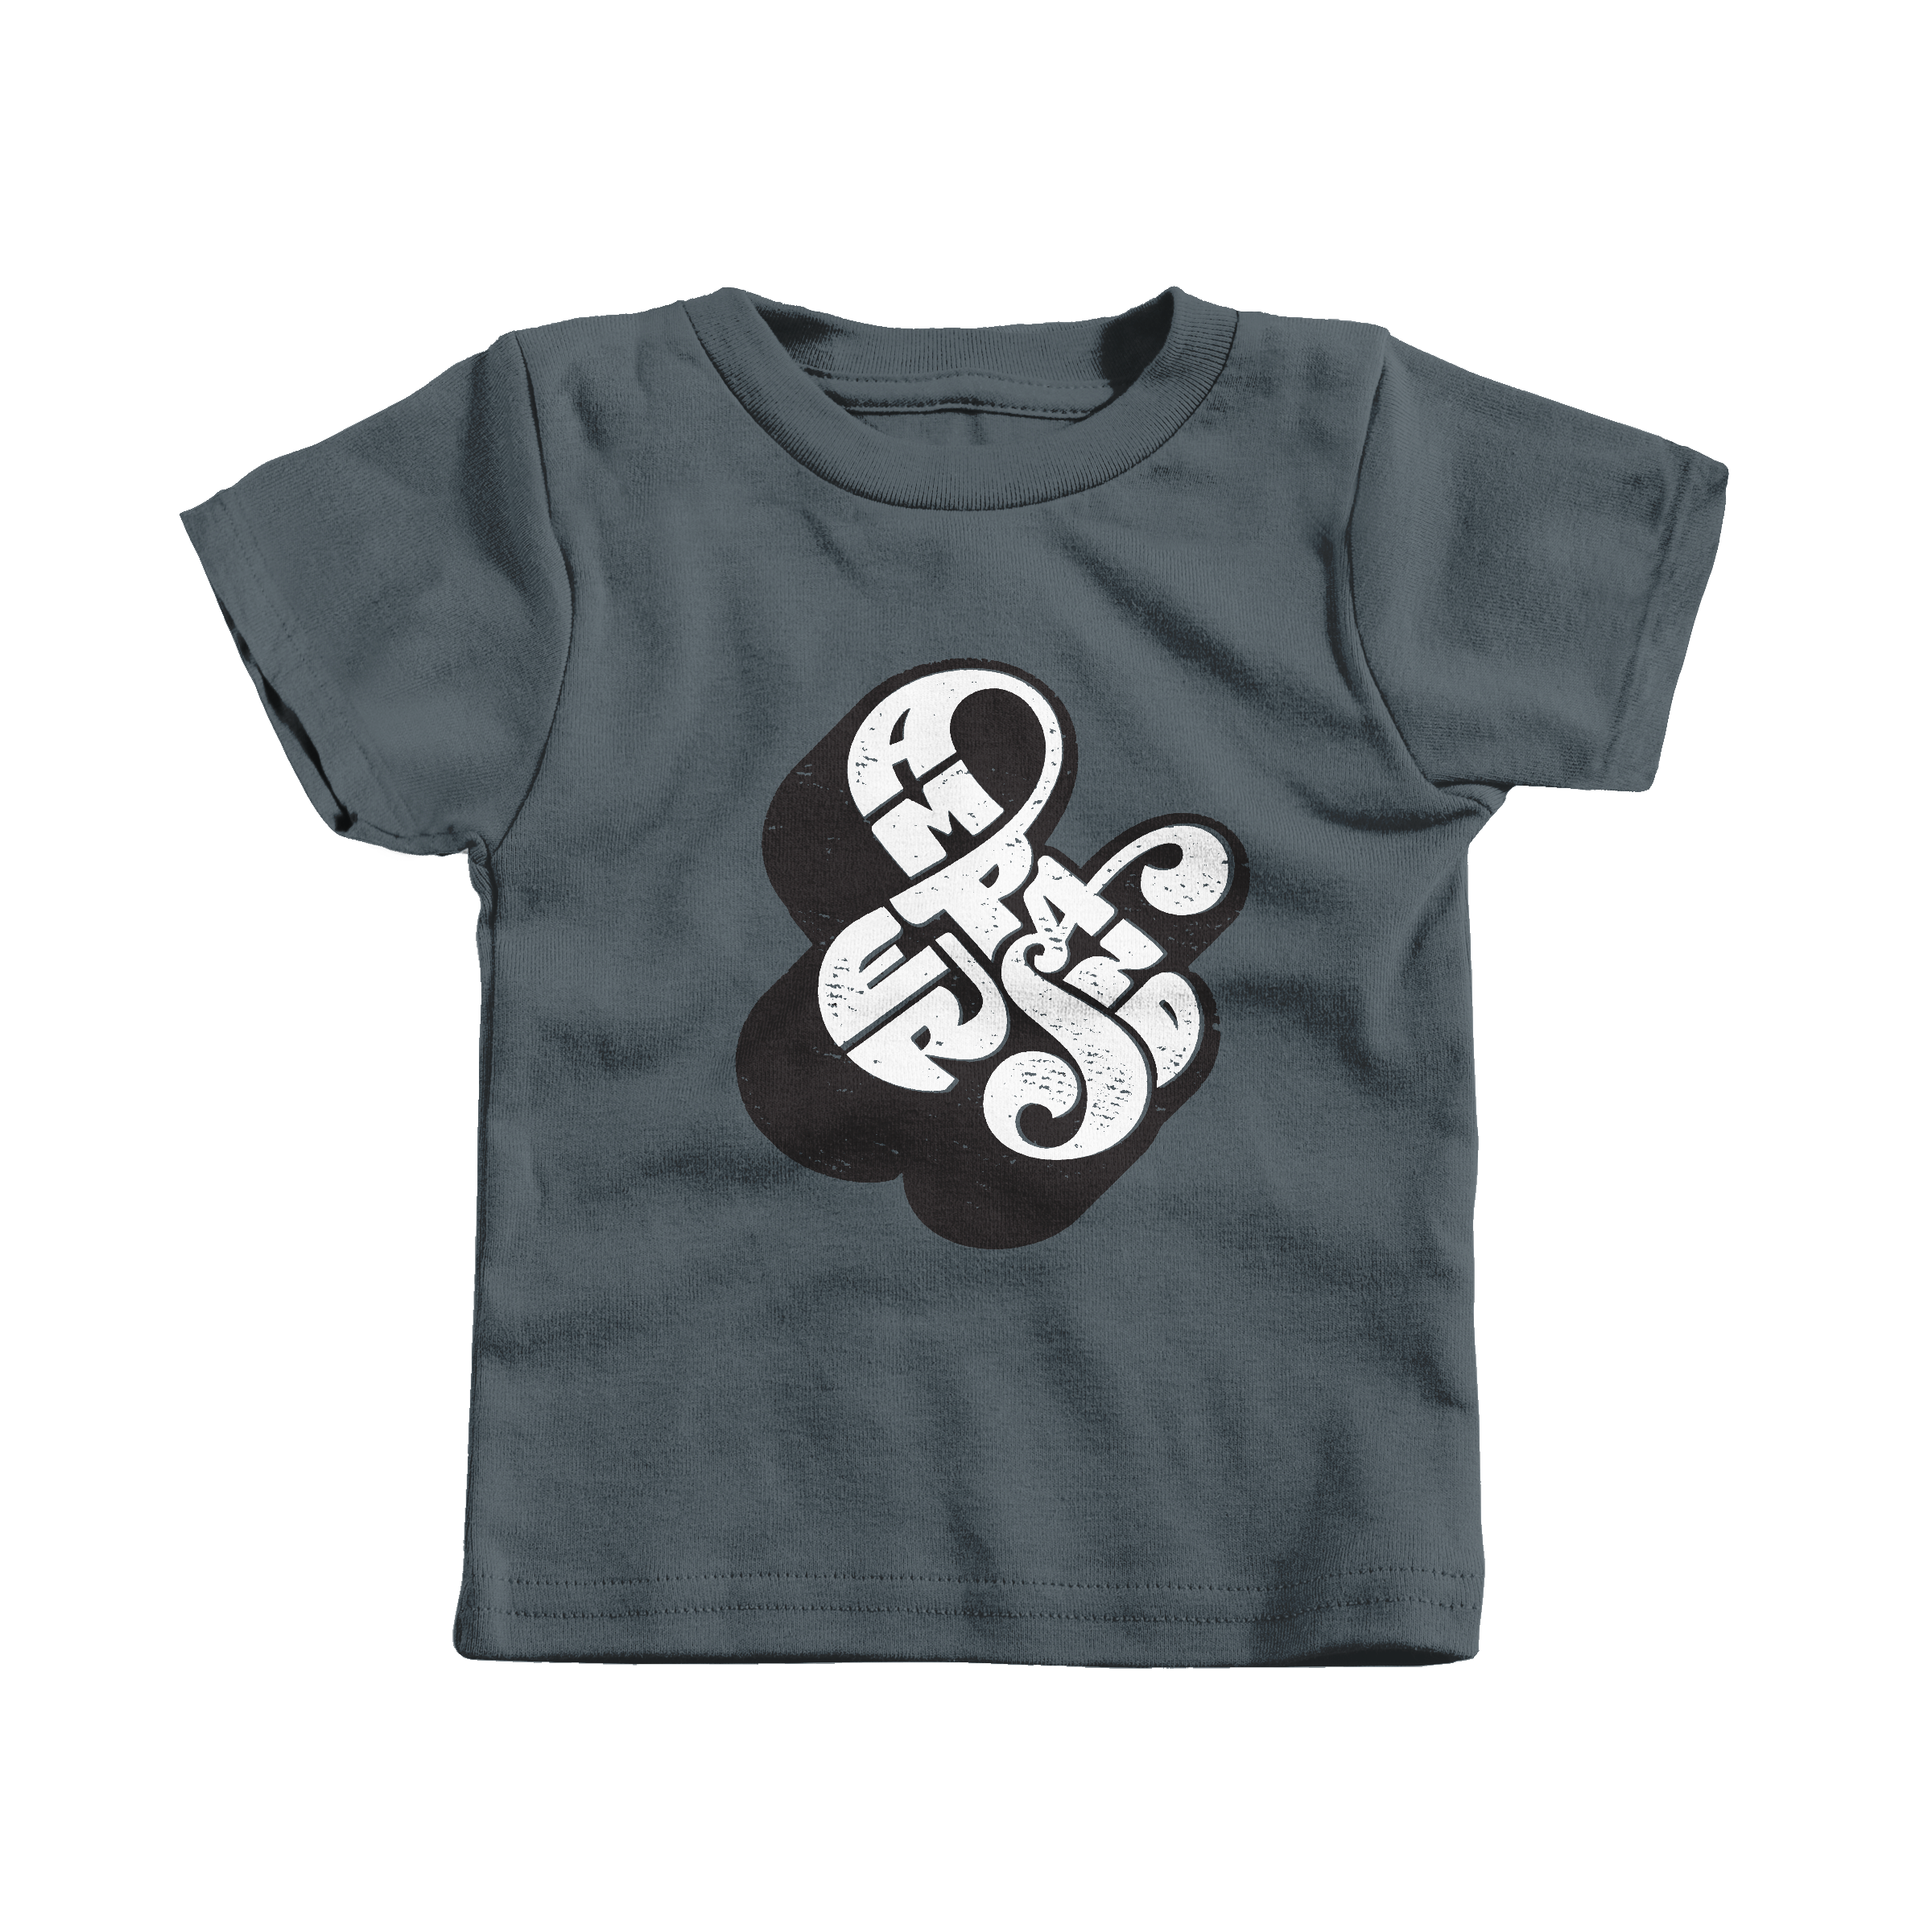 Self-Referential Ampersand Charcoal (Infant)